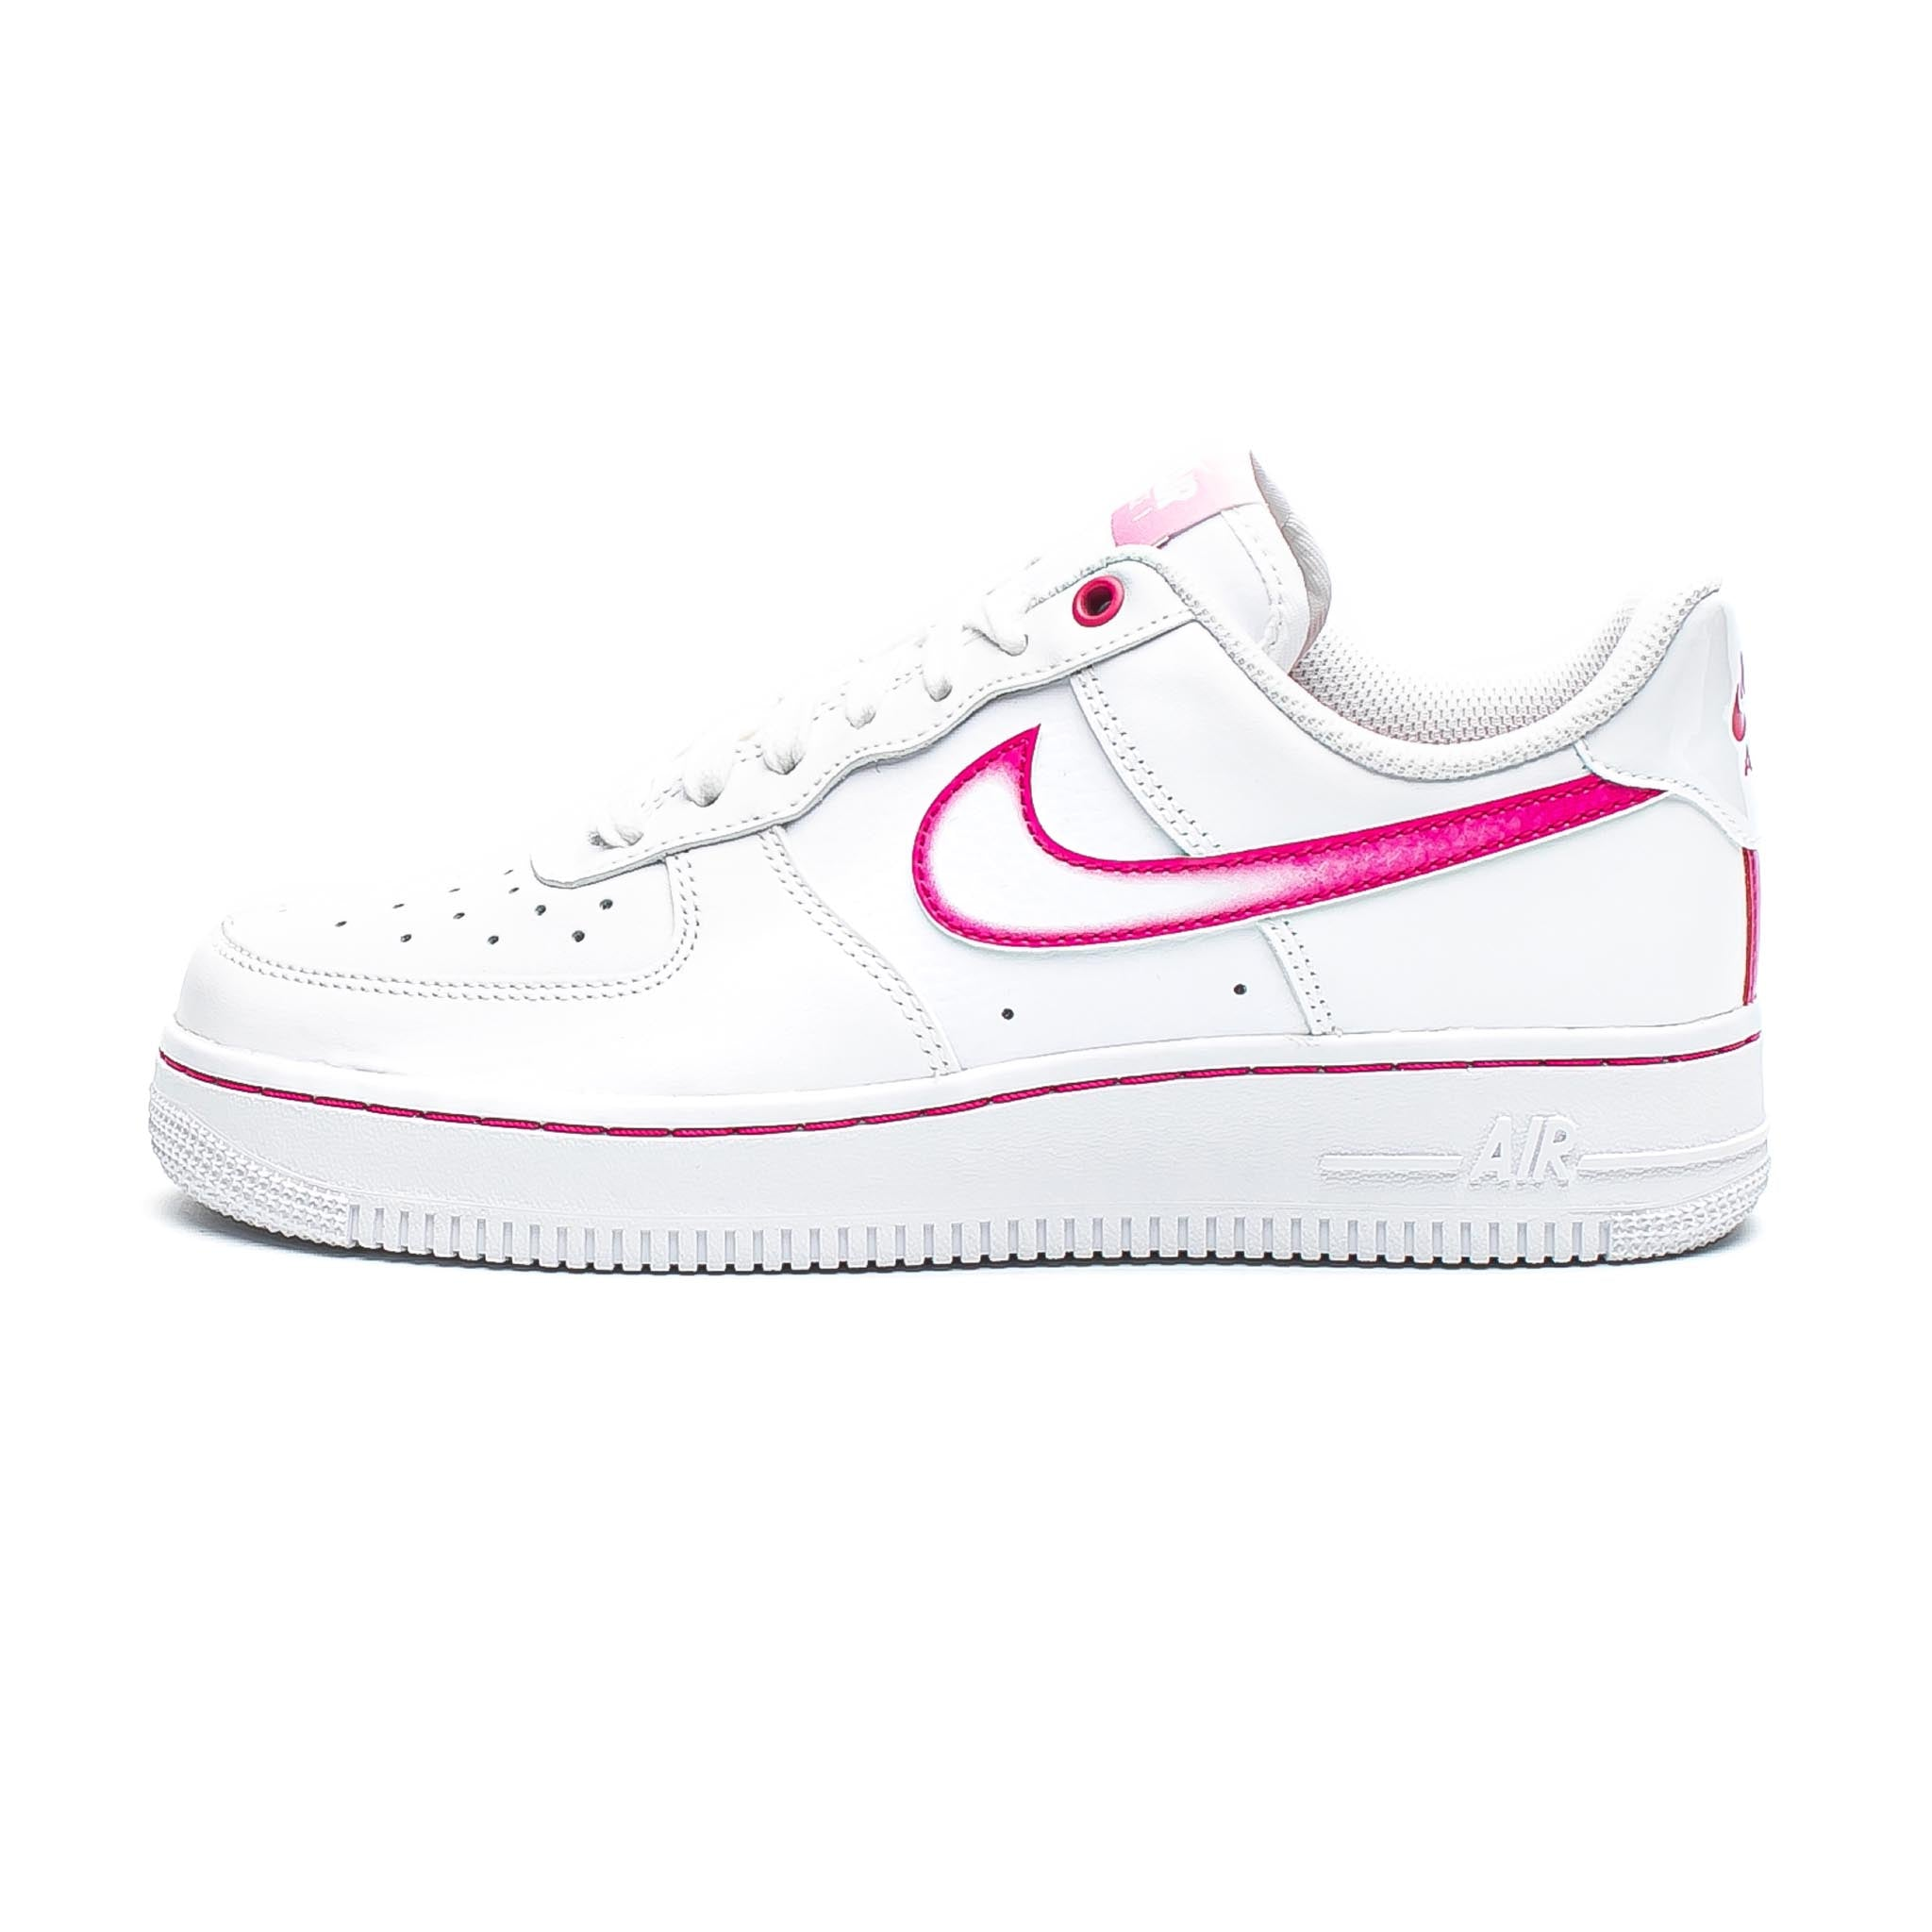 NIike Air Force 1 '07 'Airbrush' White/Fireberry